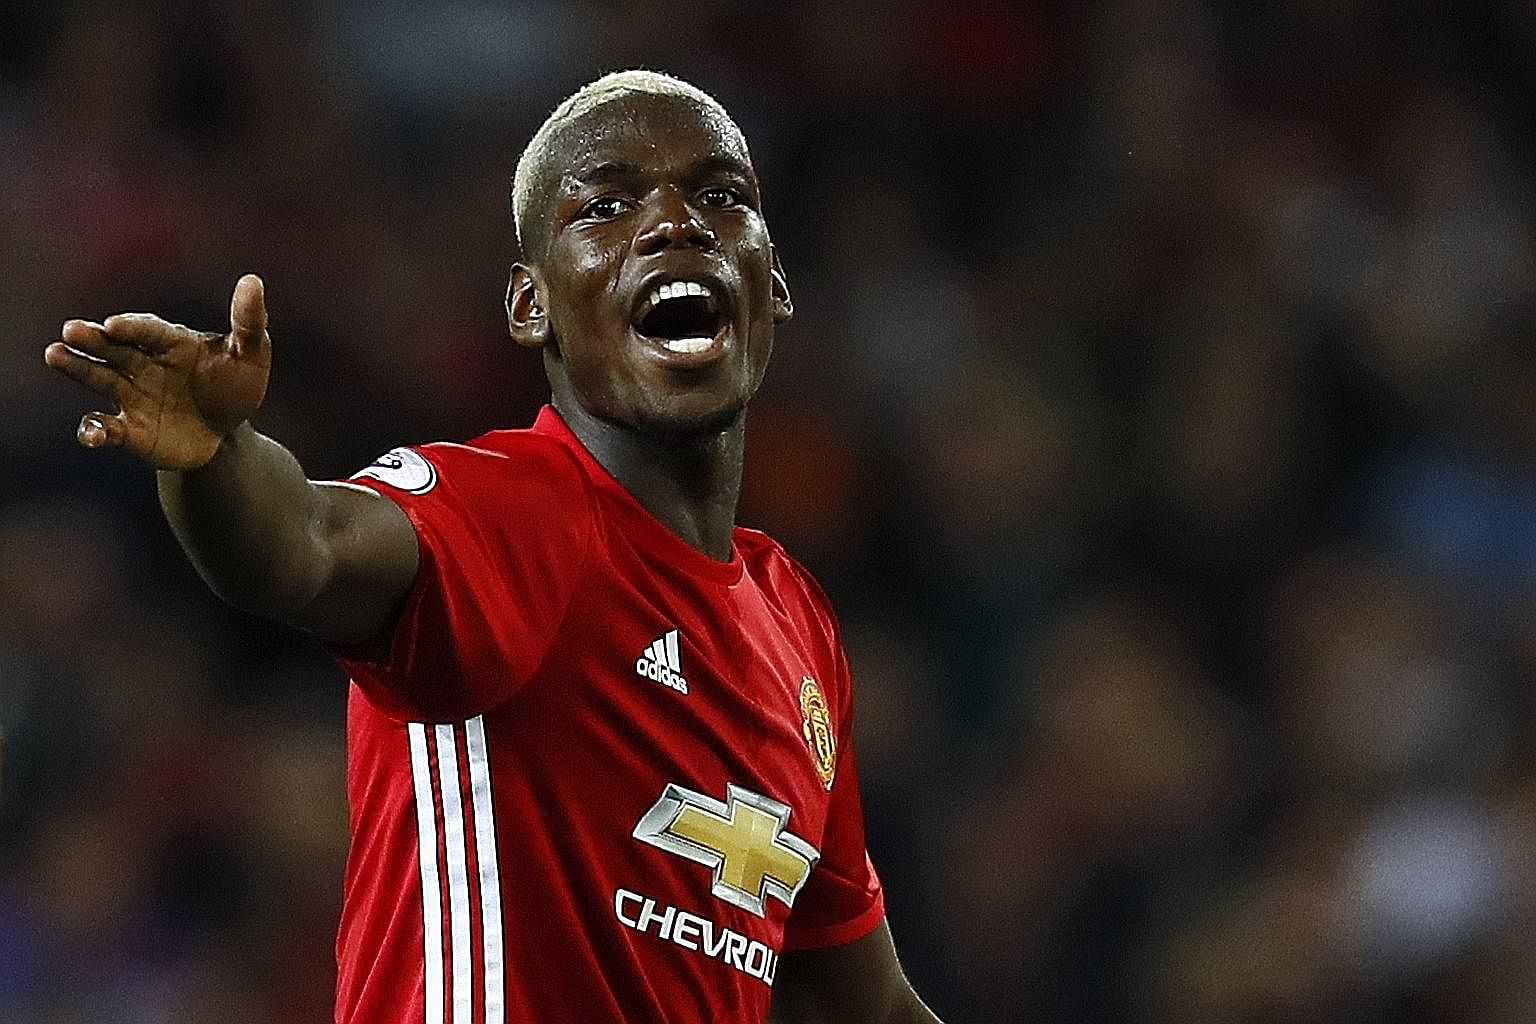 Manchester United's capture of Paul Pogba marked the first time a British club have broken the transfer world record since Newcastle bought Alan Shearer in 1996.